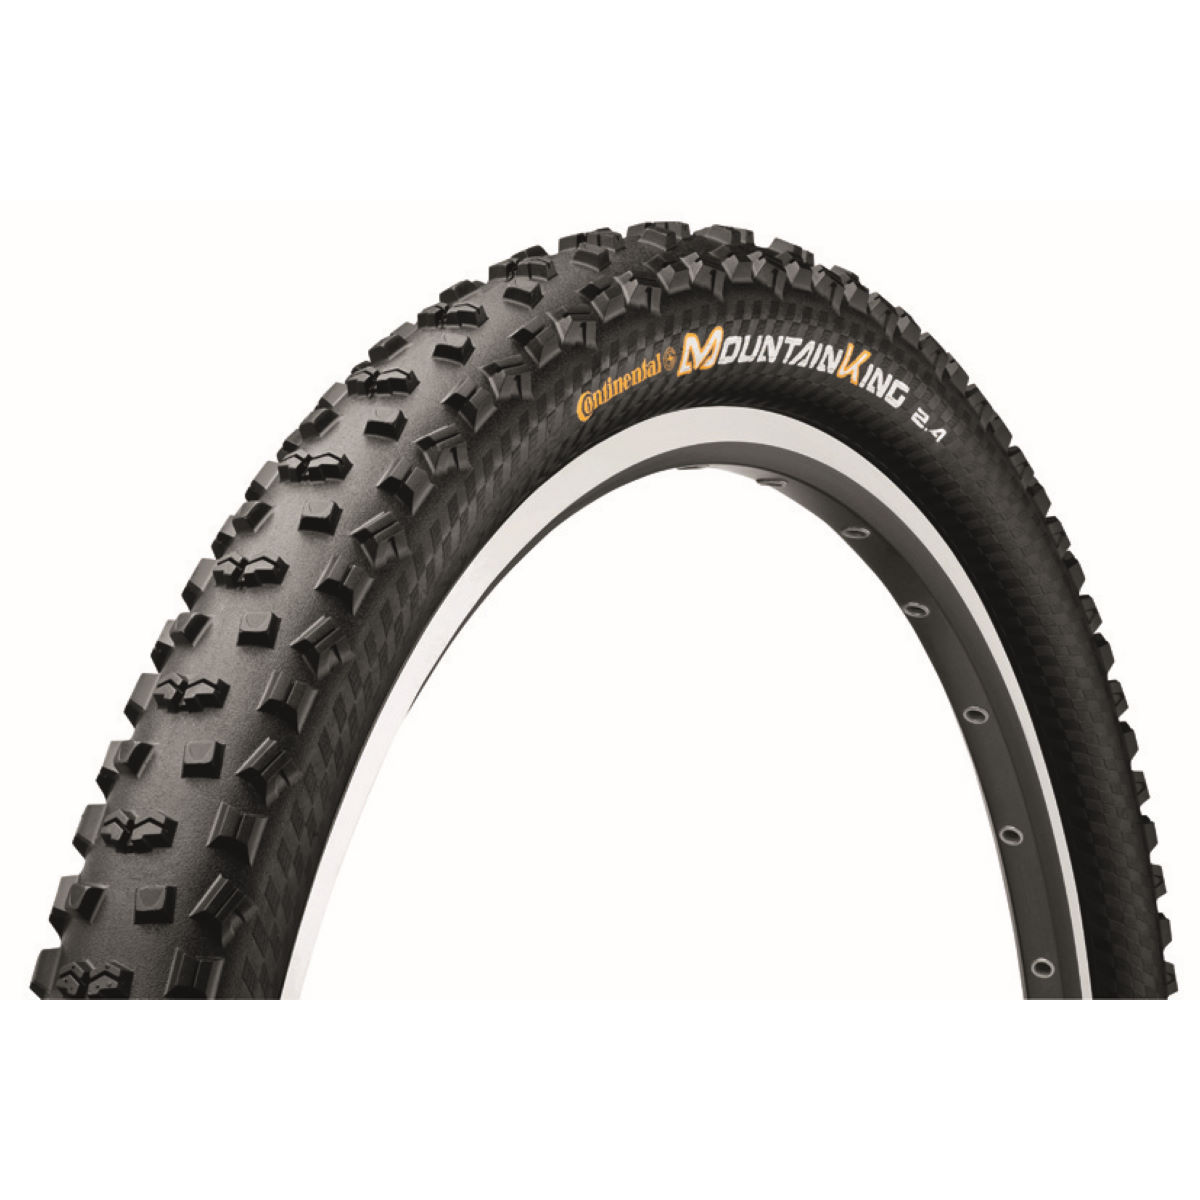 Pneu VTT Continental Mountain King II - 2.4 29'' Noir Pneus